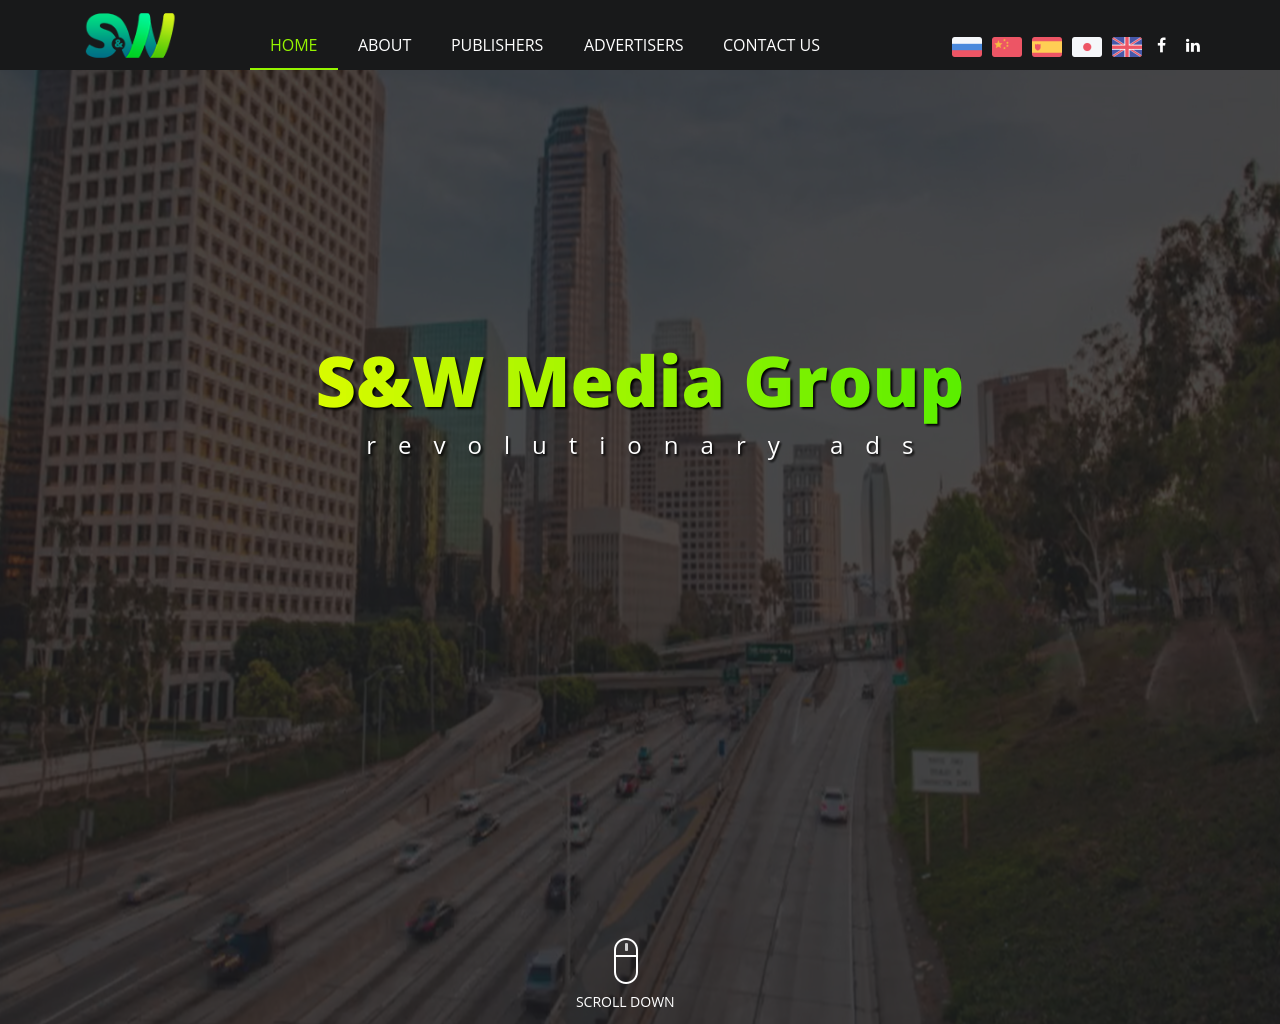 S&W-Media-Group-Advertising-Reviews-Pricing